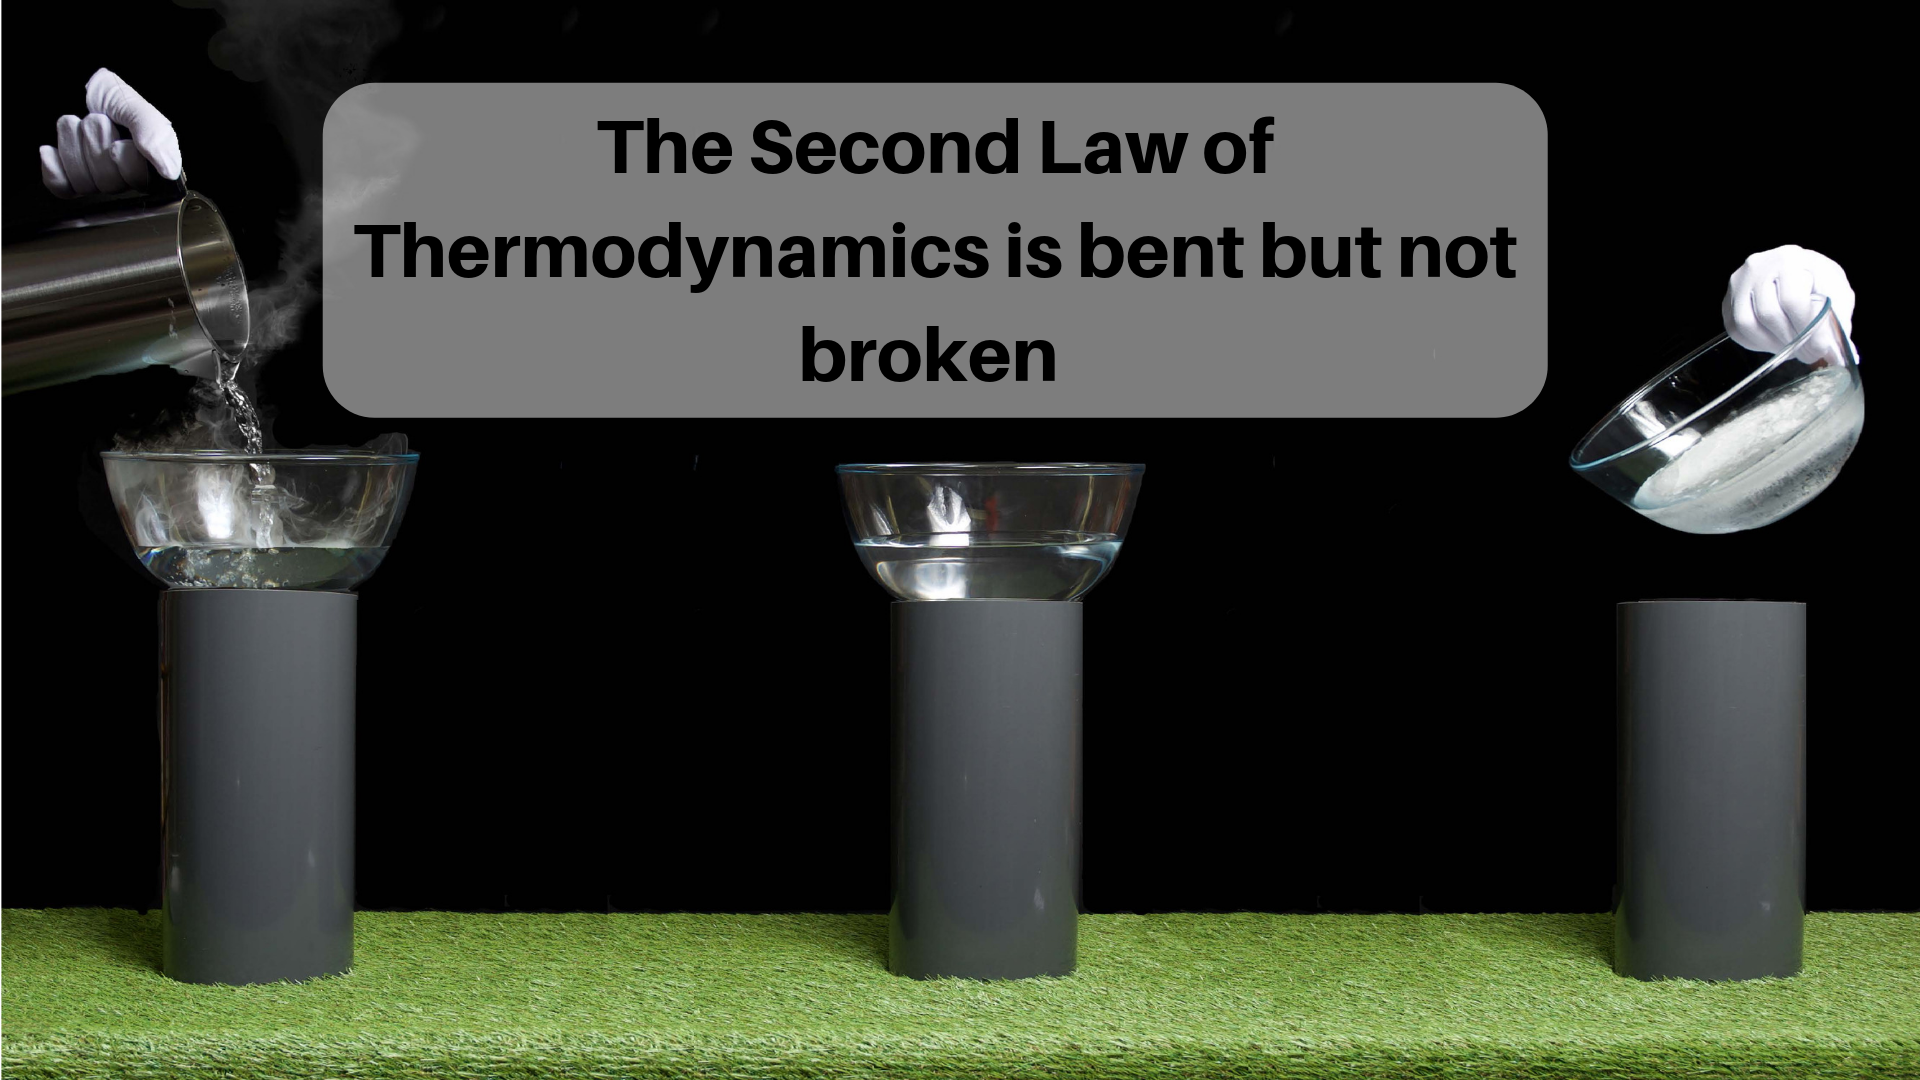 The Second Law of Thermodynamics is bent but not broken